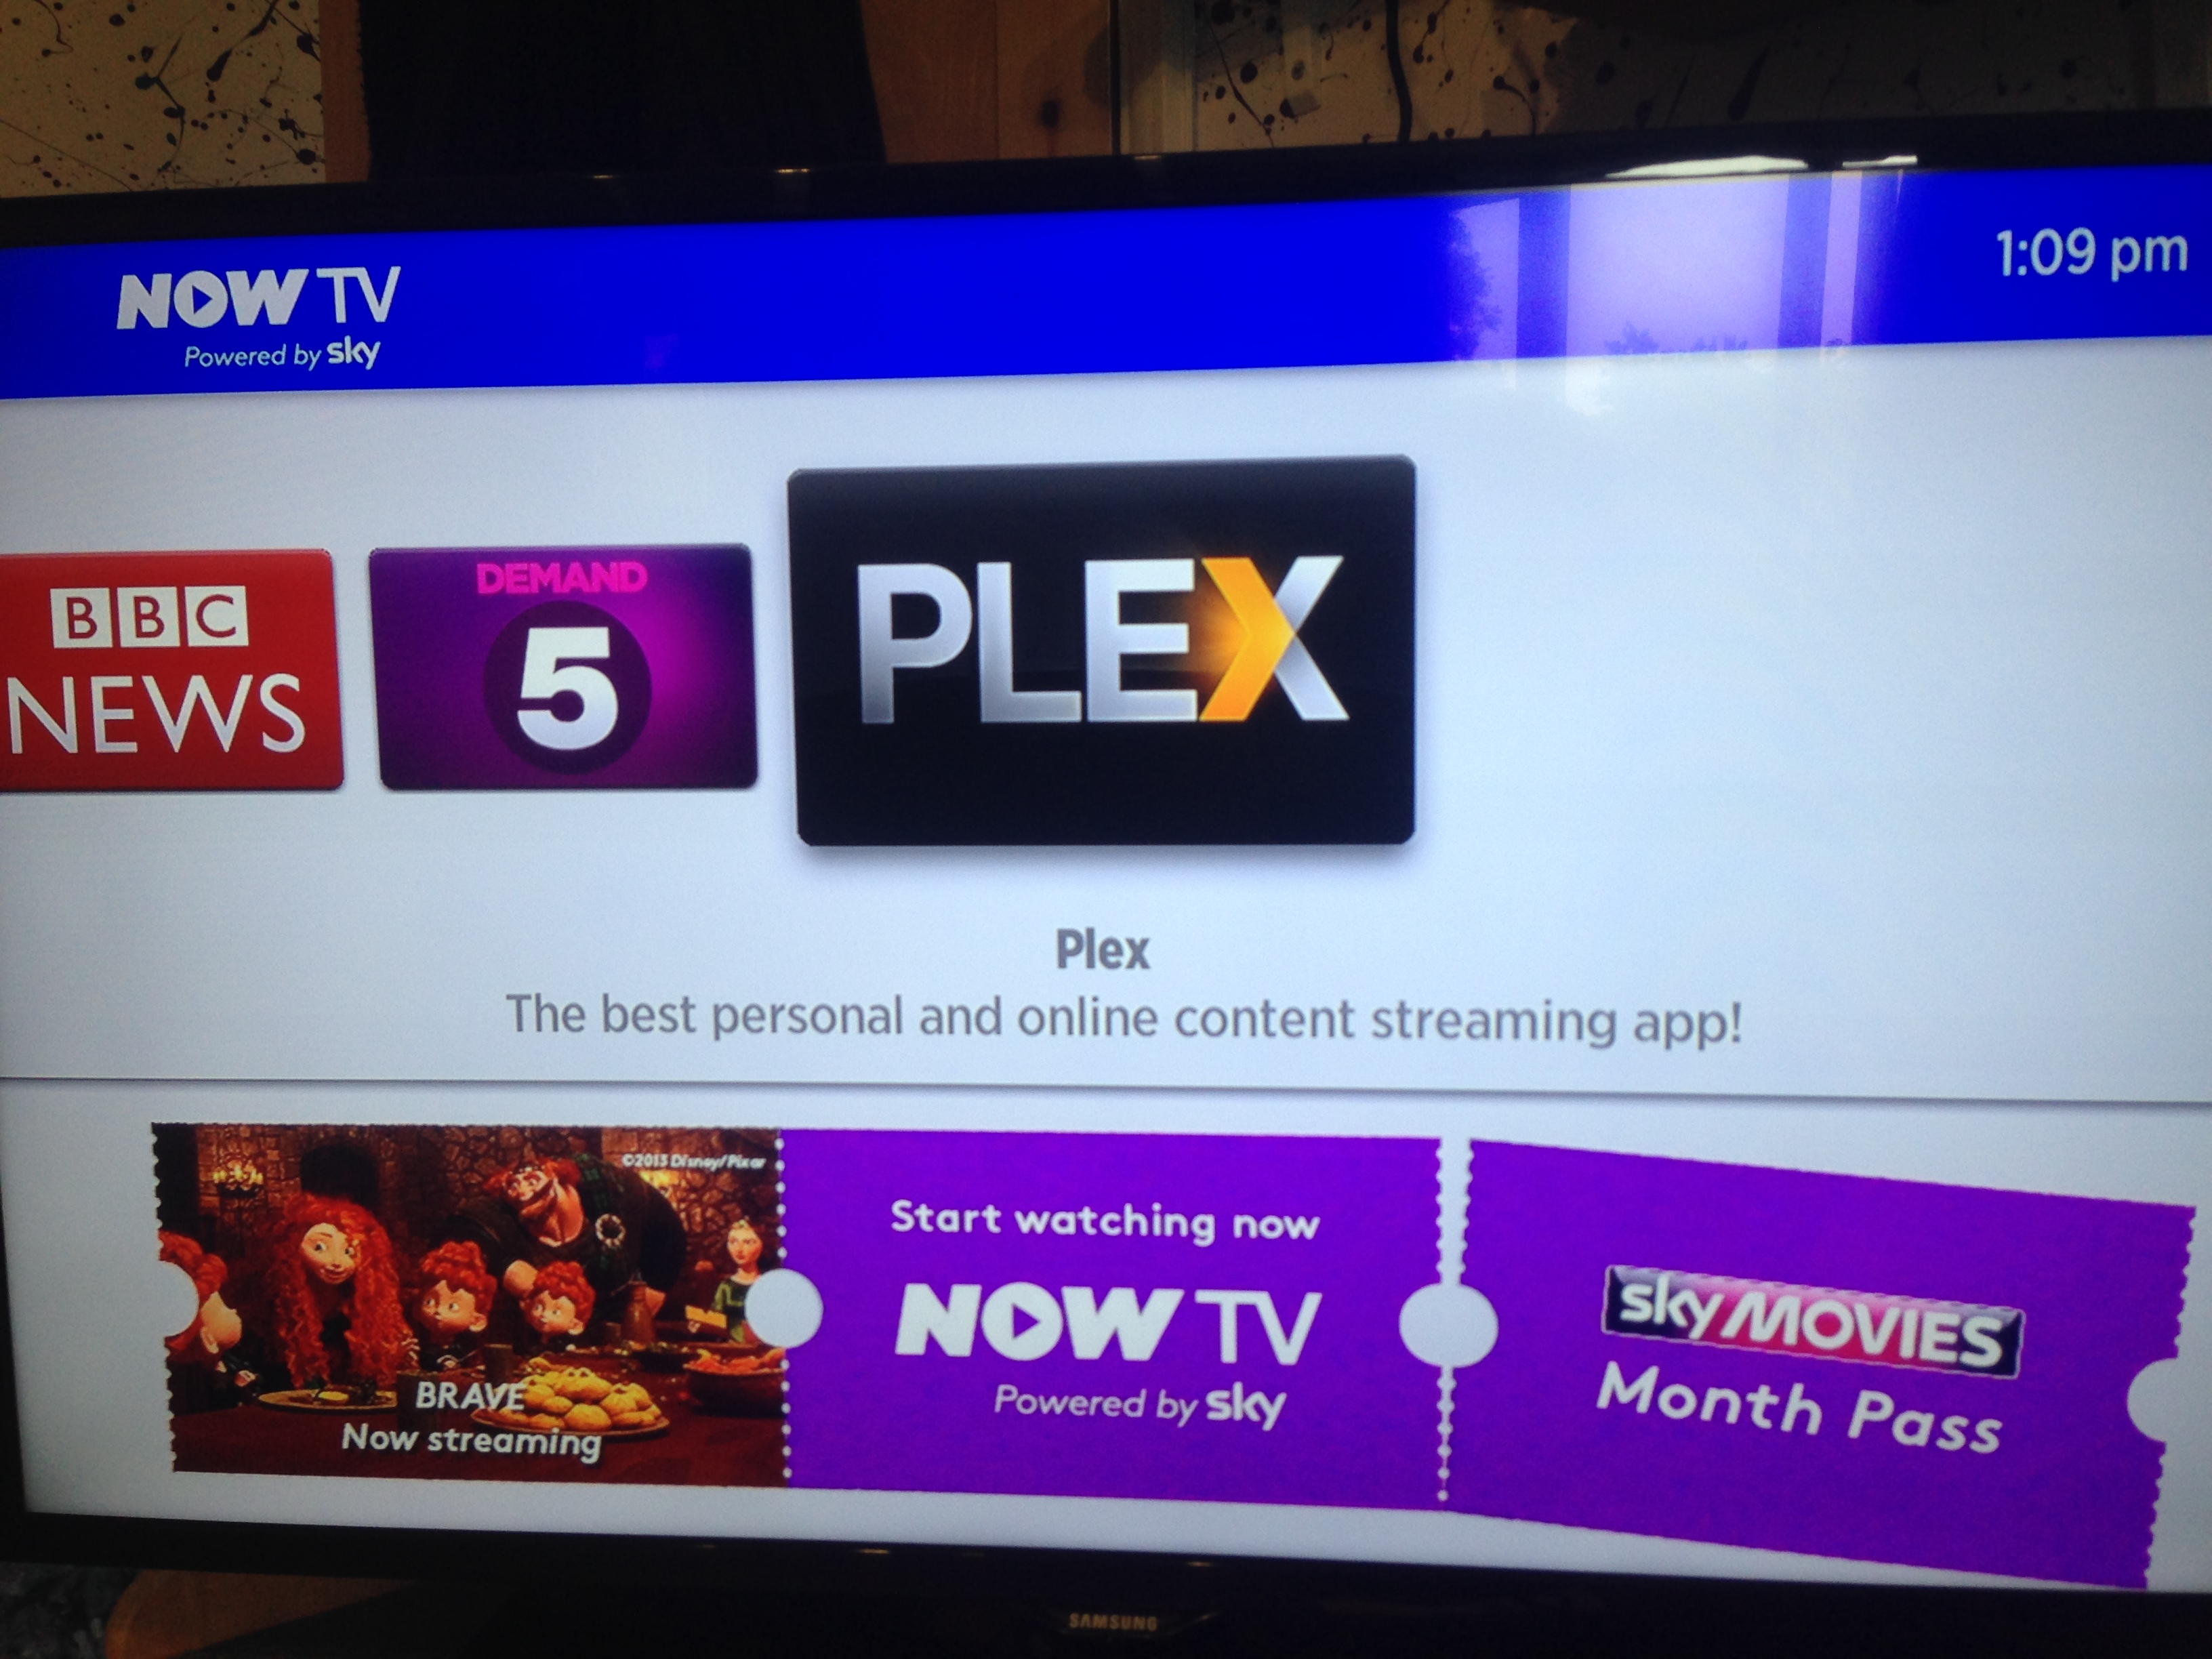 Plex Installed on NowTV Box